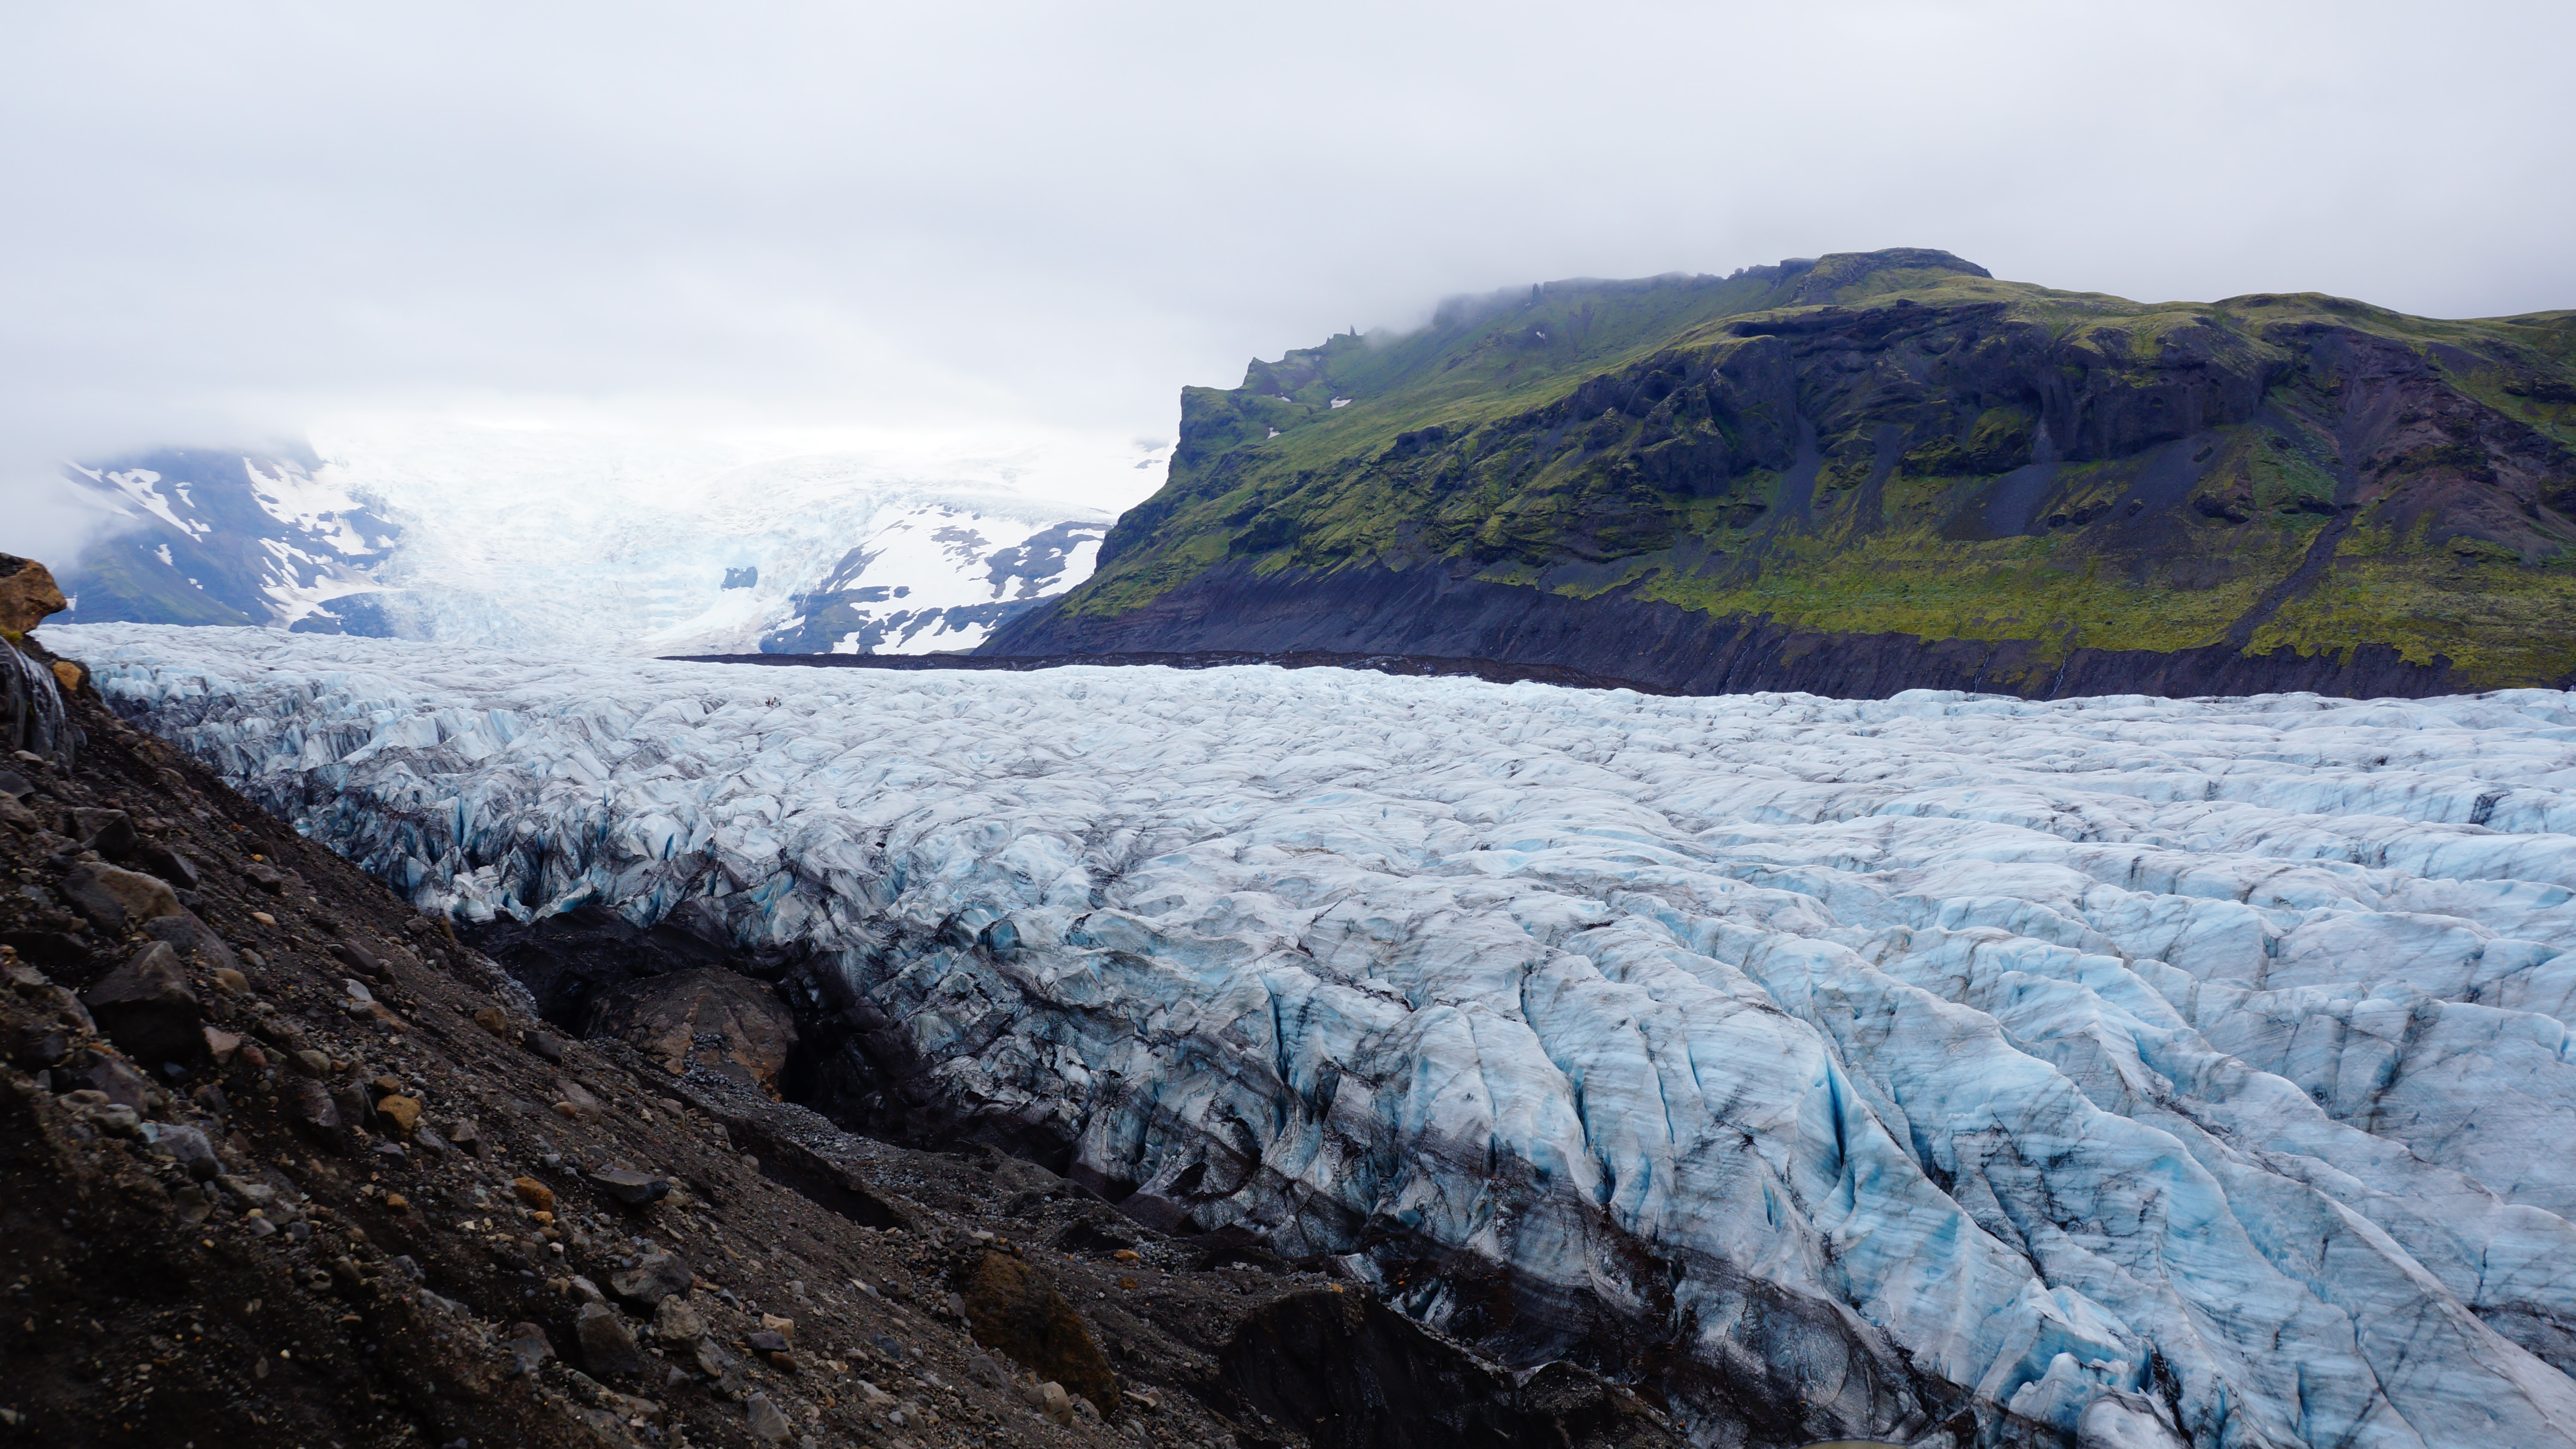 An undulating glacier near moss-covered mountains